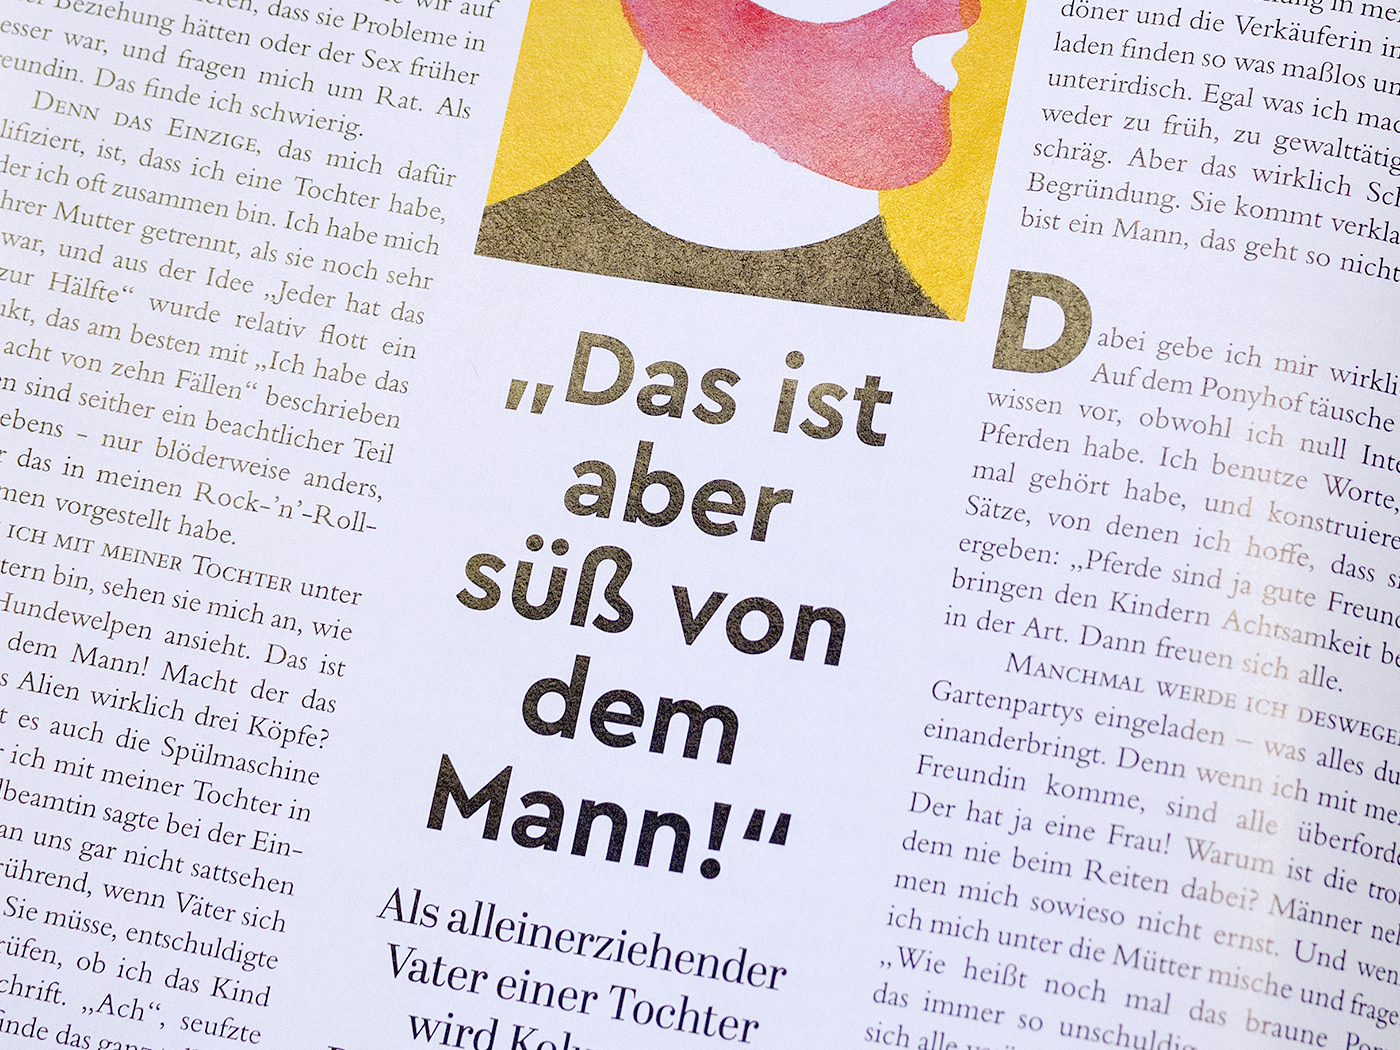 Type Mates In Use Guido Maria Kretschmer Fashion Magazine Gruner Jahr 08 Cera Pro Cera Compact